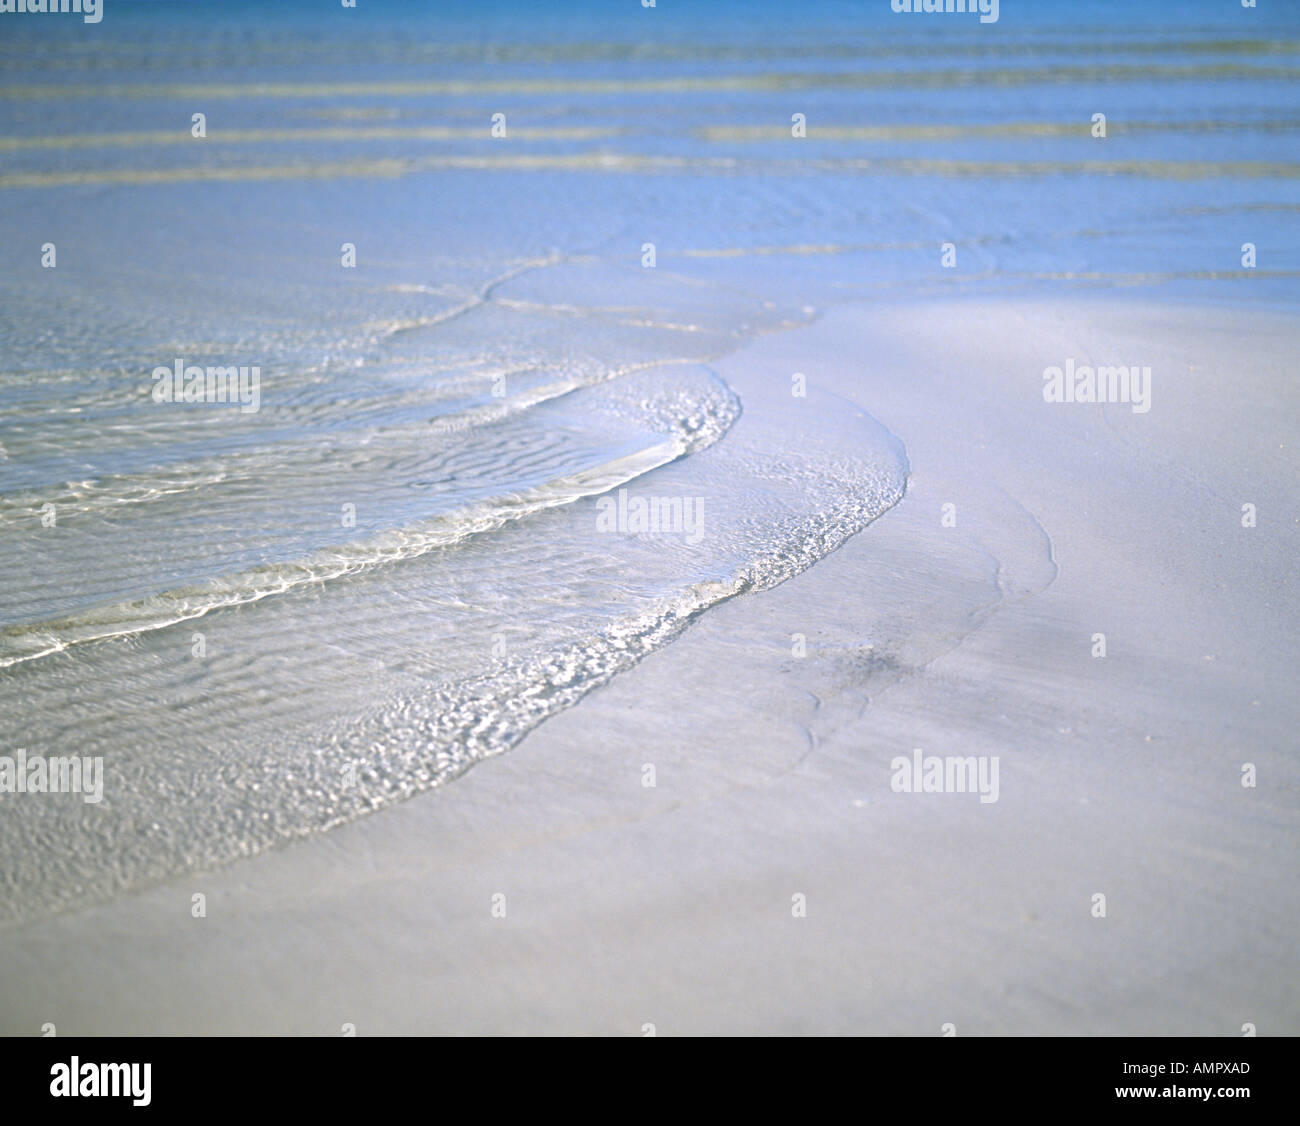 Soft waves at the sand beach - Stock Image